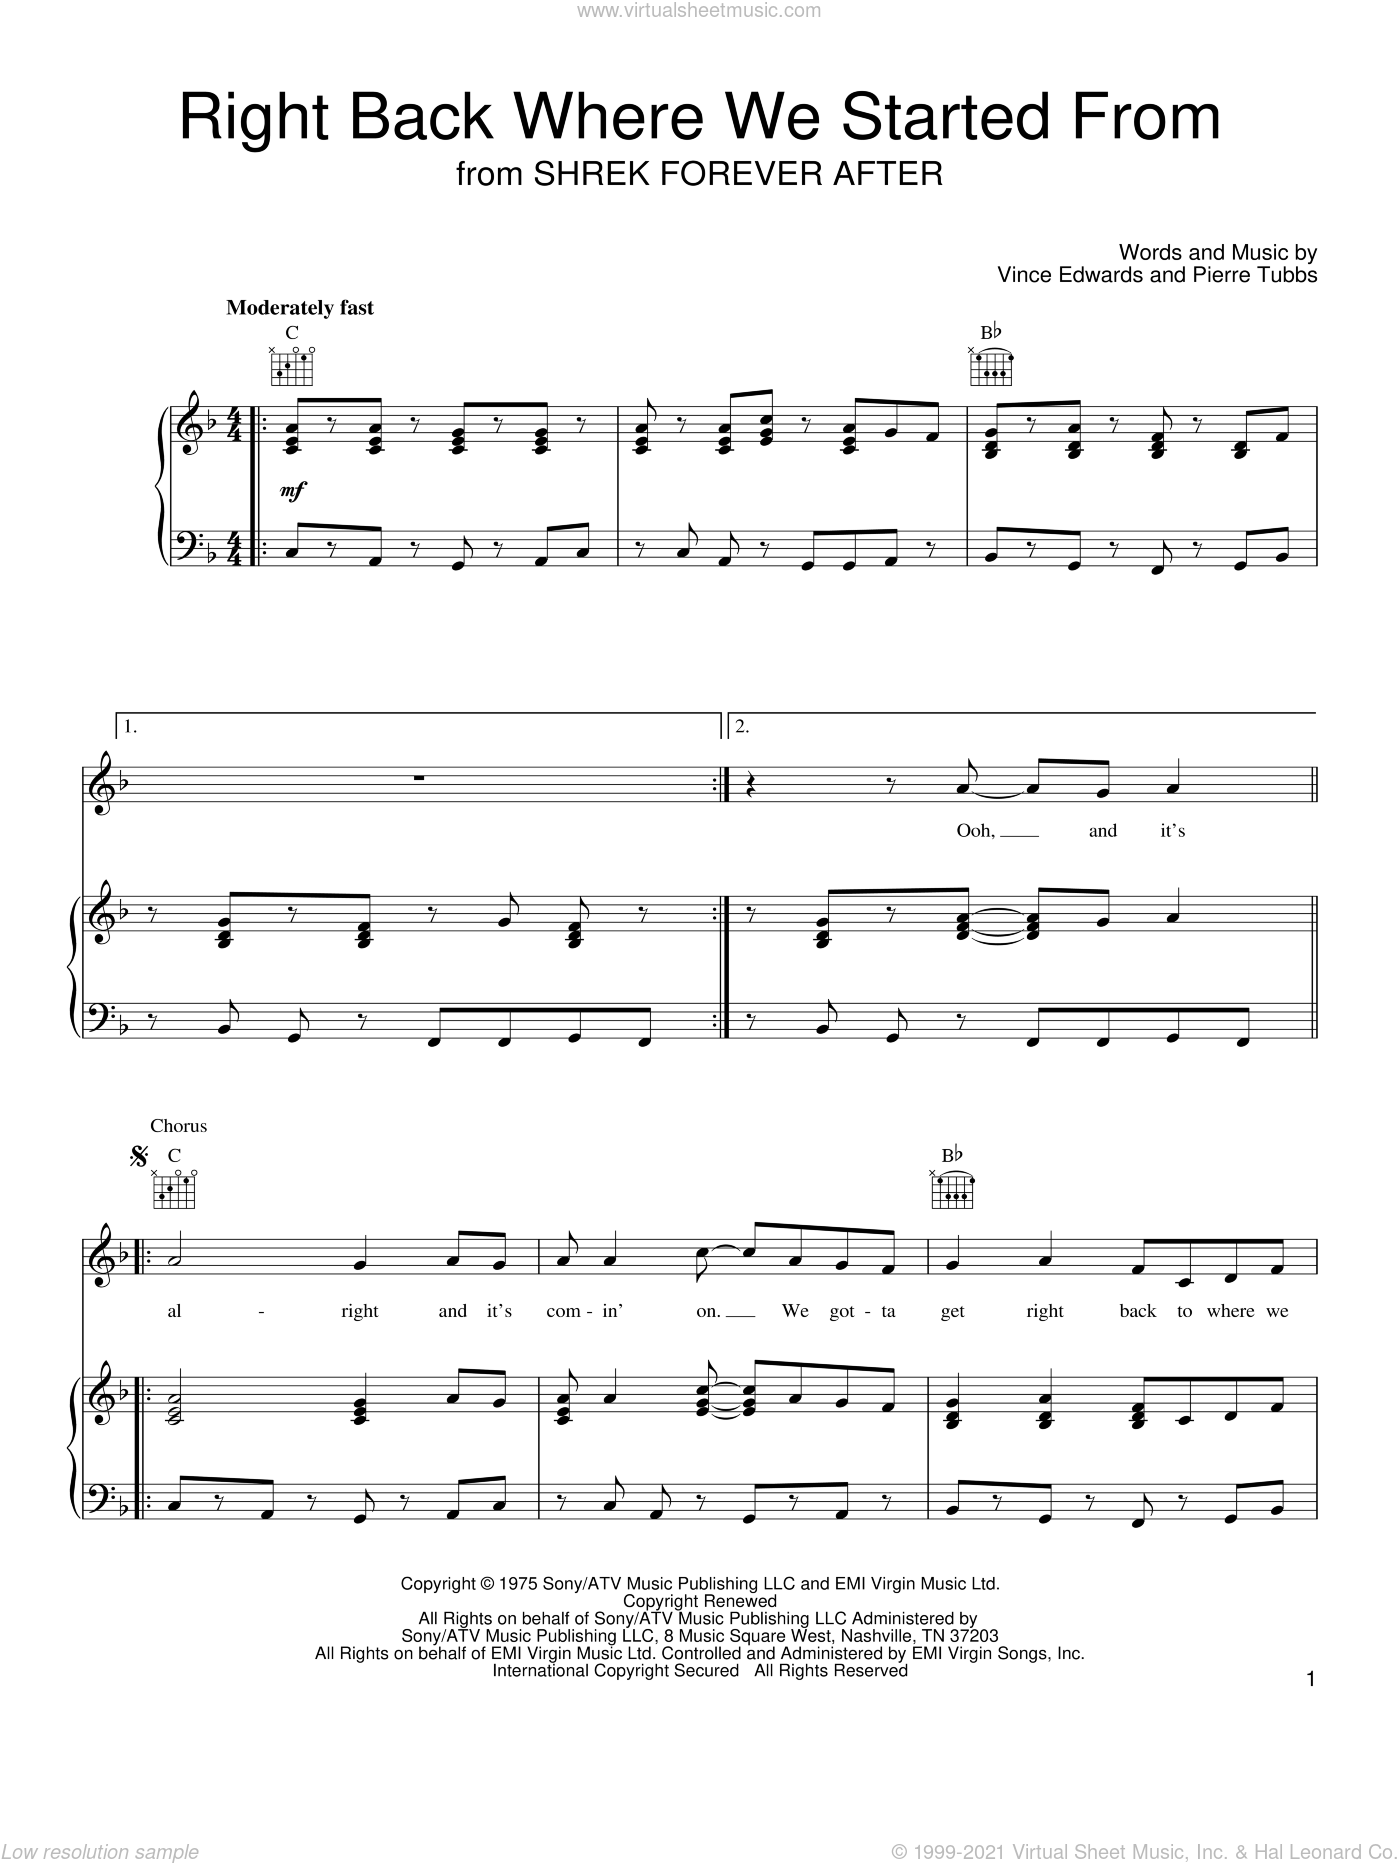 Right Back Where We Started From sheet music for voice, piano or guitar by Vince Edwards and Pierre Tubbs. Score Image Preview.